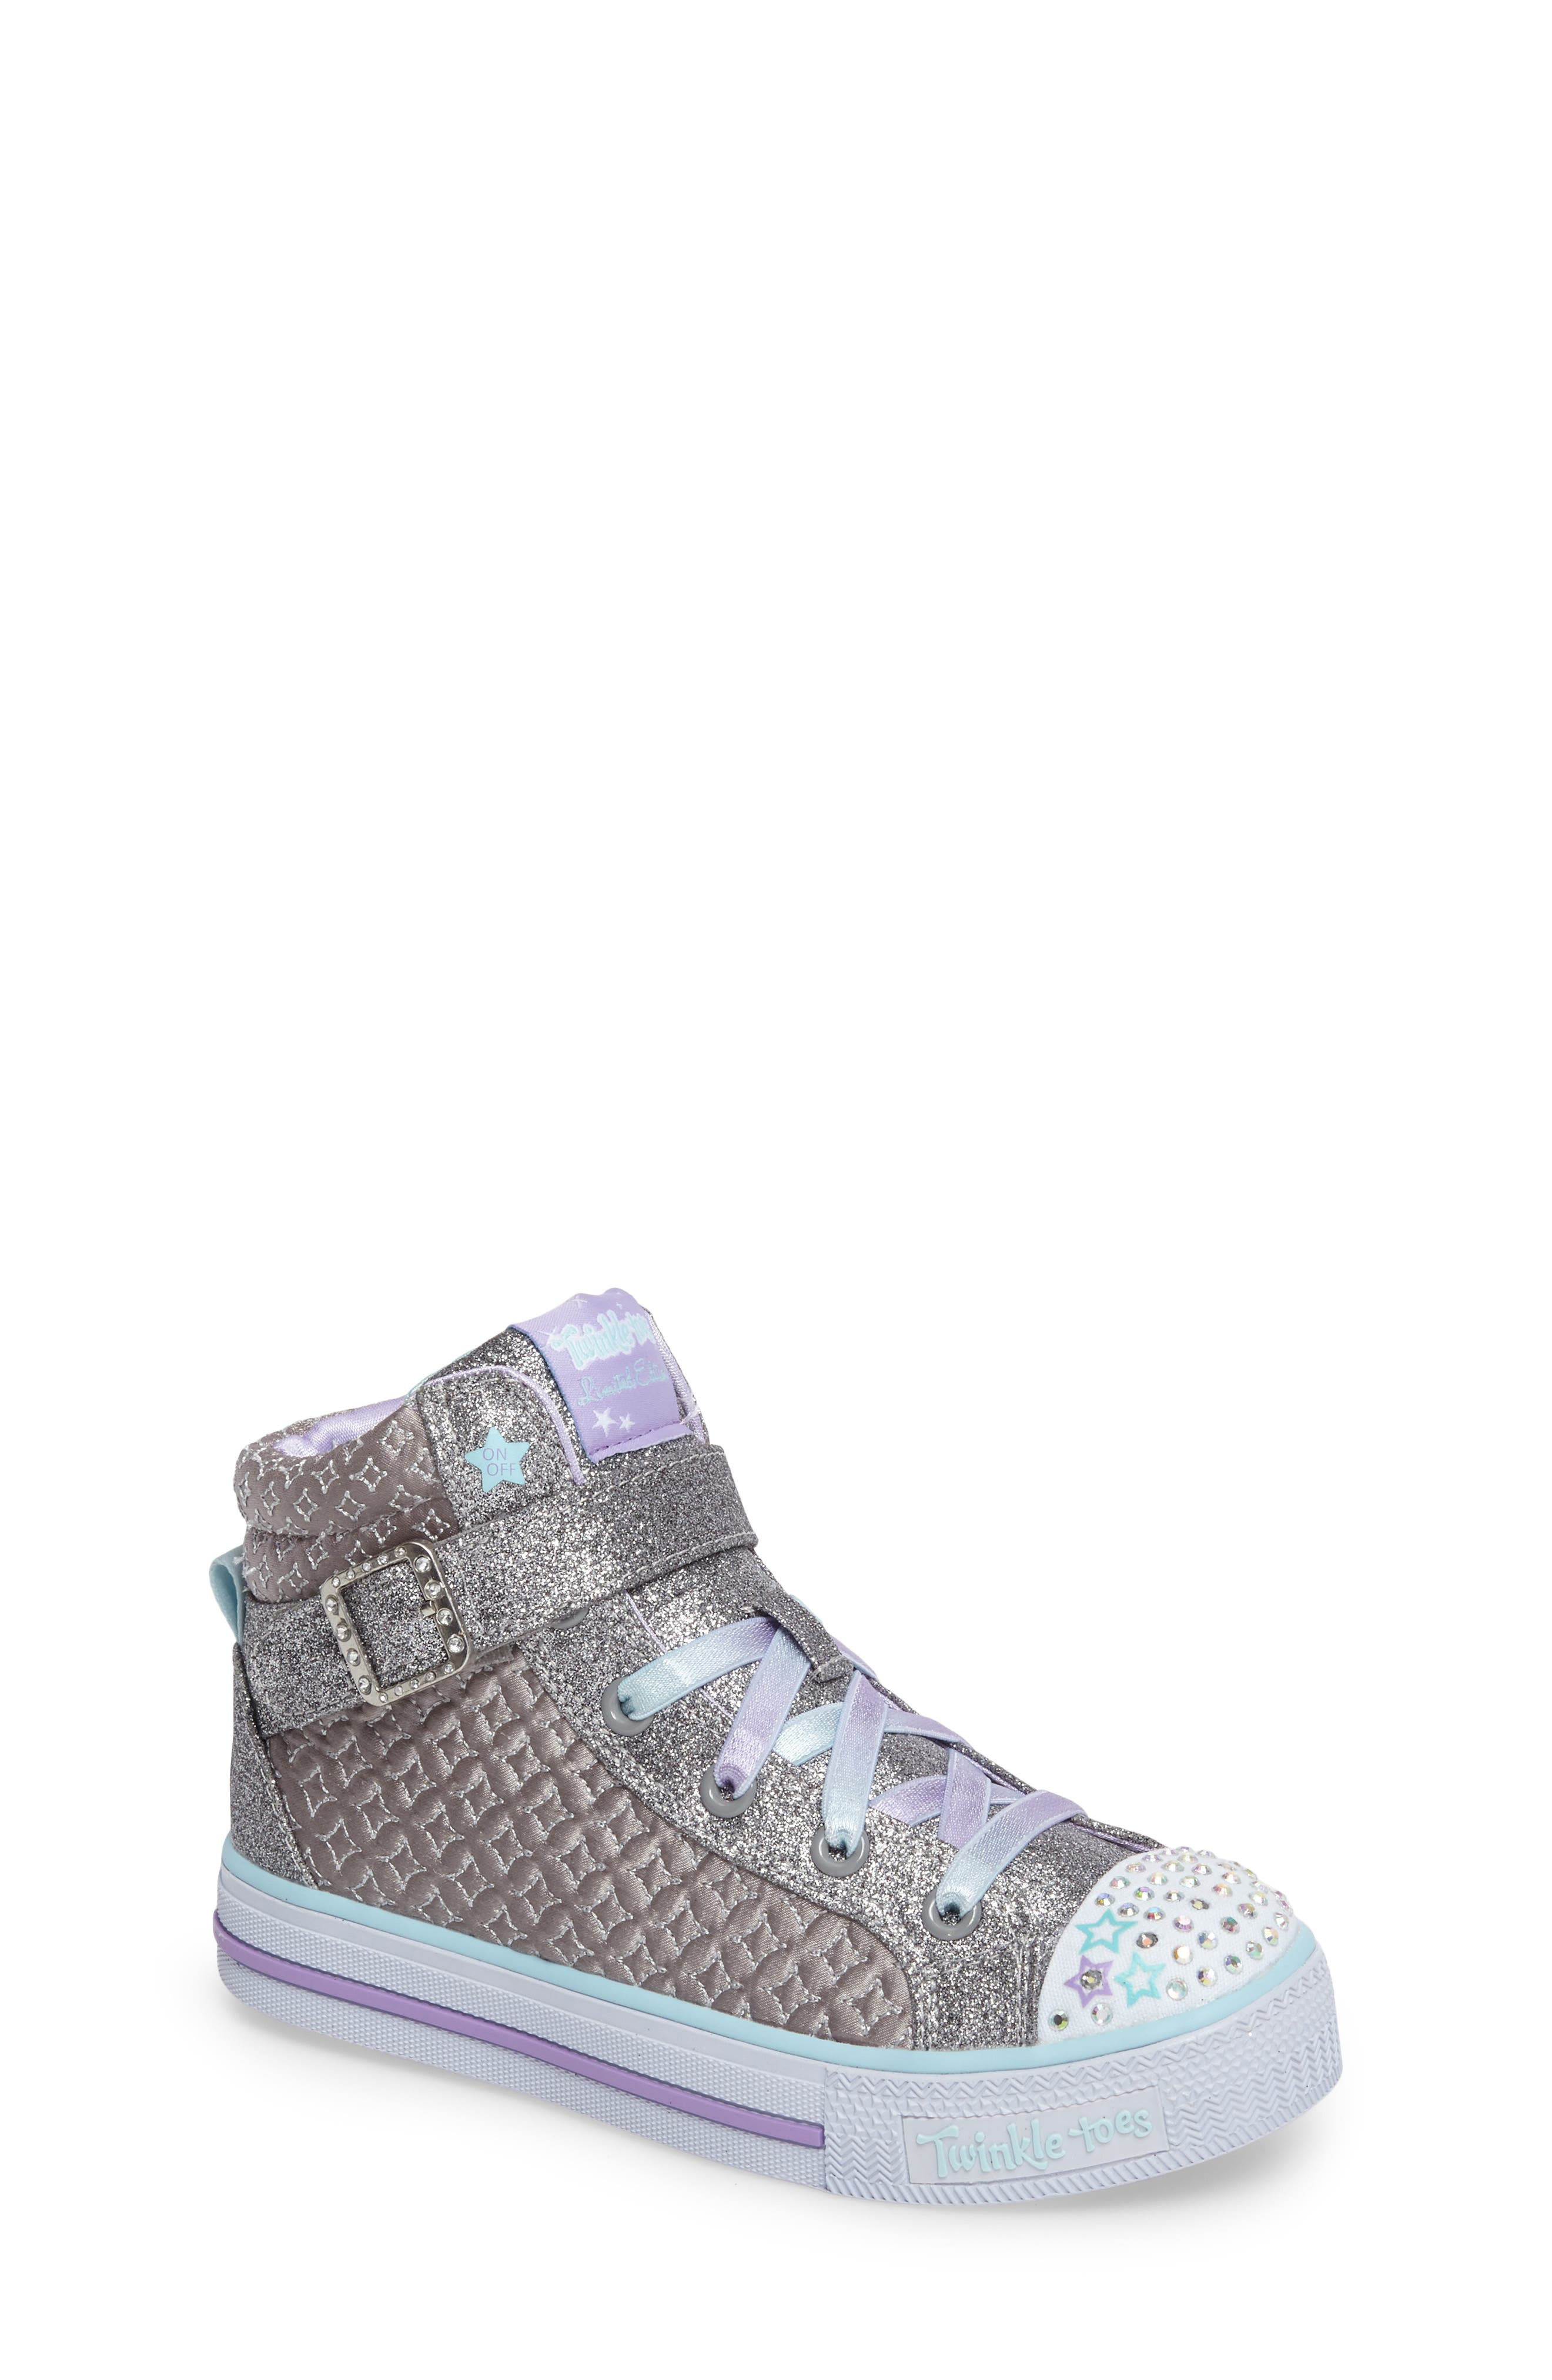 SKECHERS Twinkle Toes Shuffles High Top Sneaker (Toddler & Little Kid)